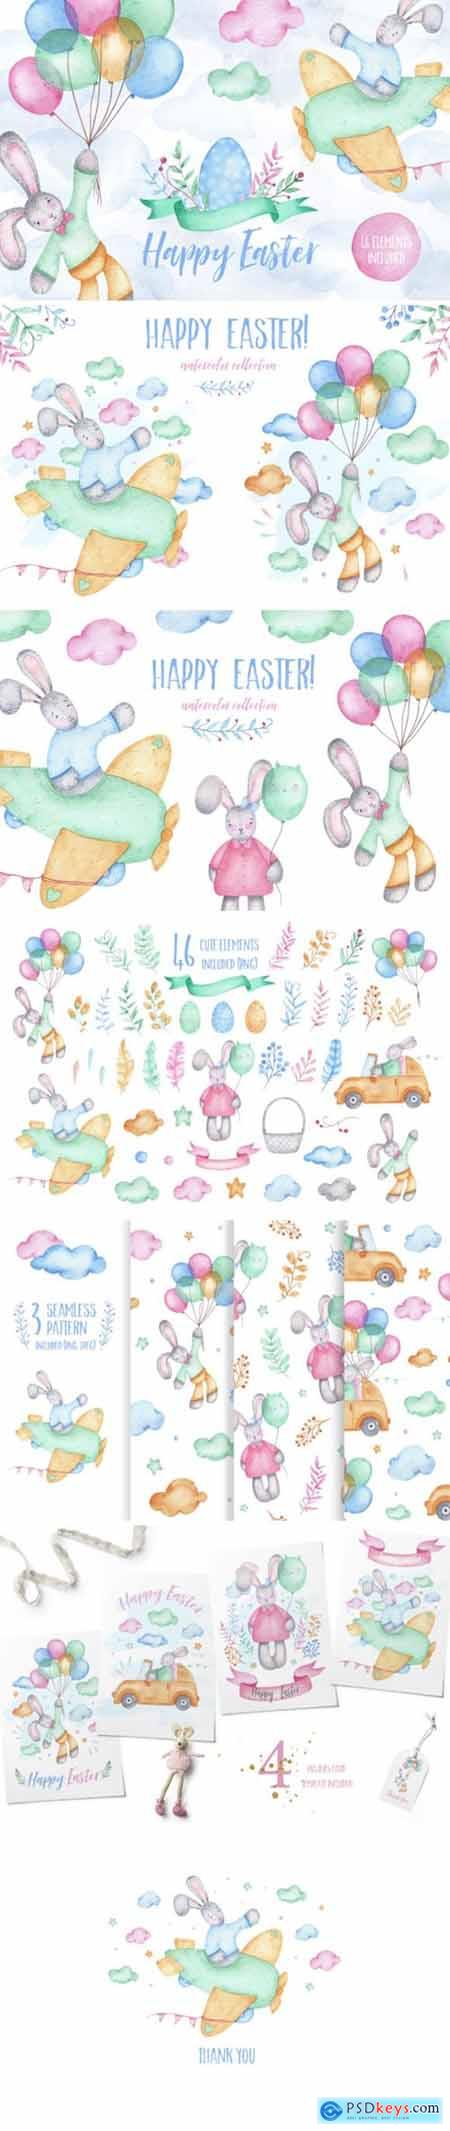 Happy Easter - Watercolor Clipart 2194126